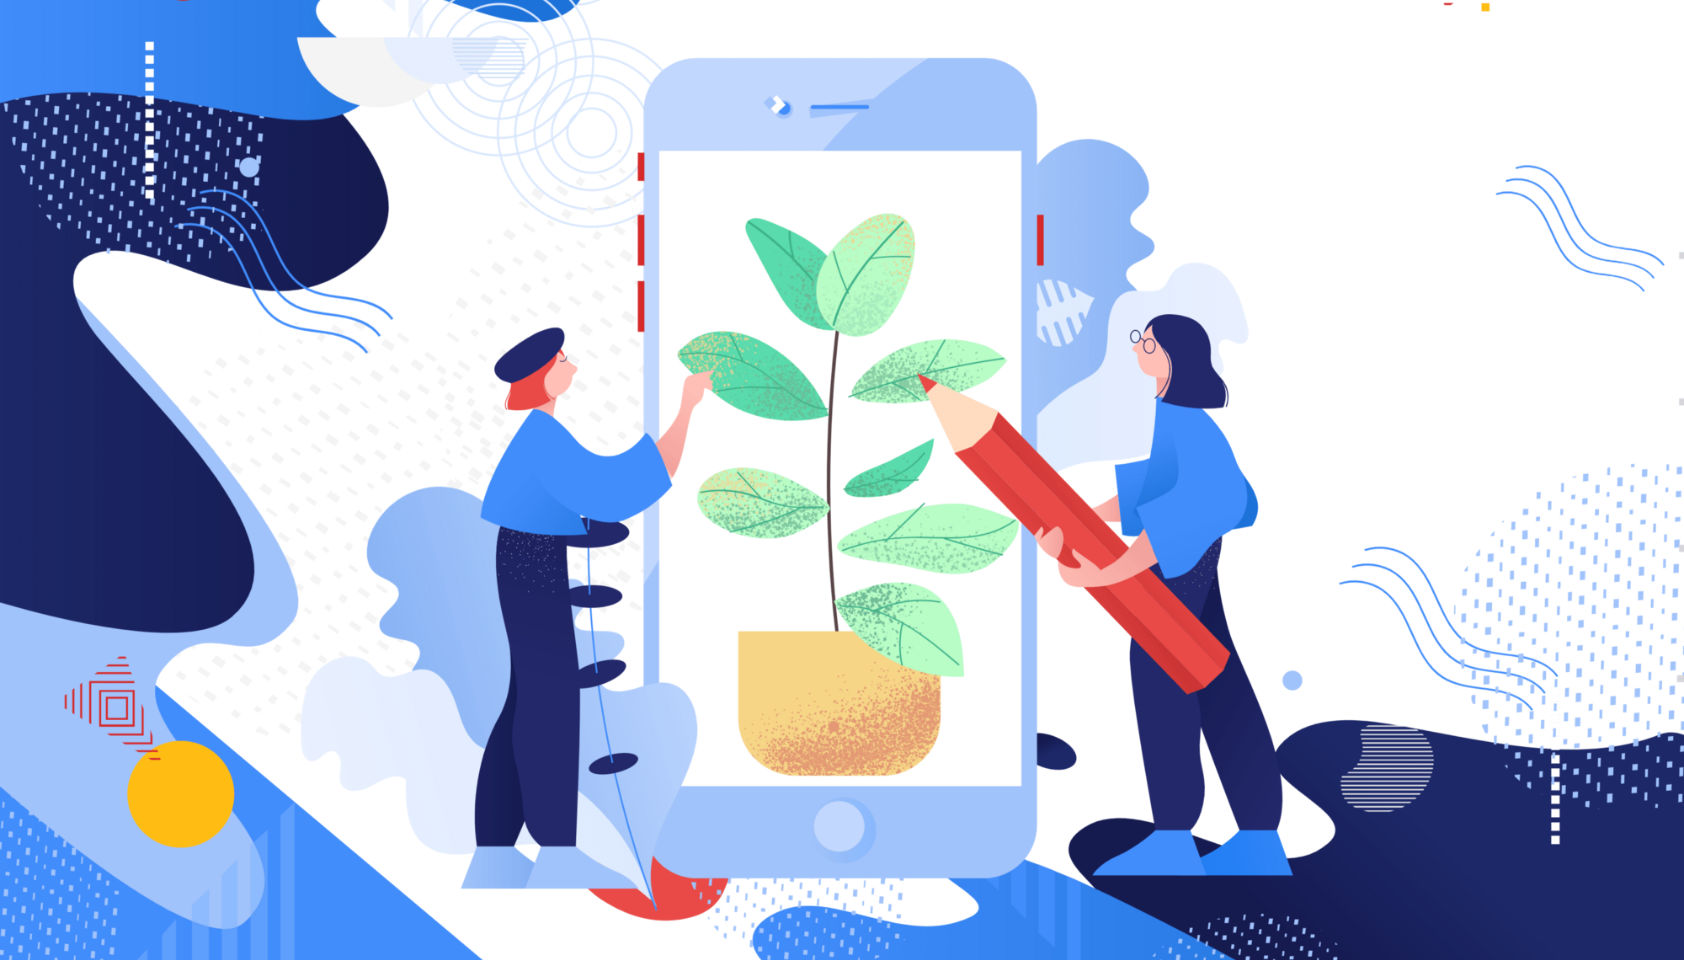 Popular Design News of the Week: October 19, 2020 – October 25, 2020